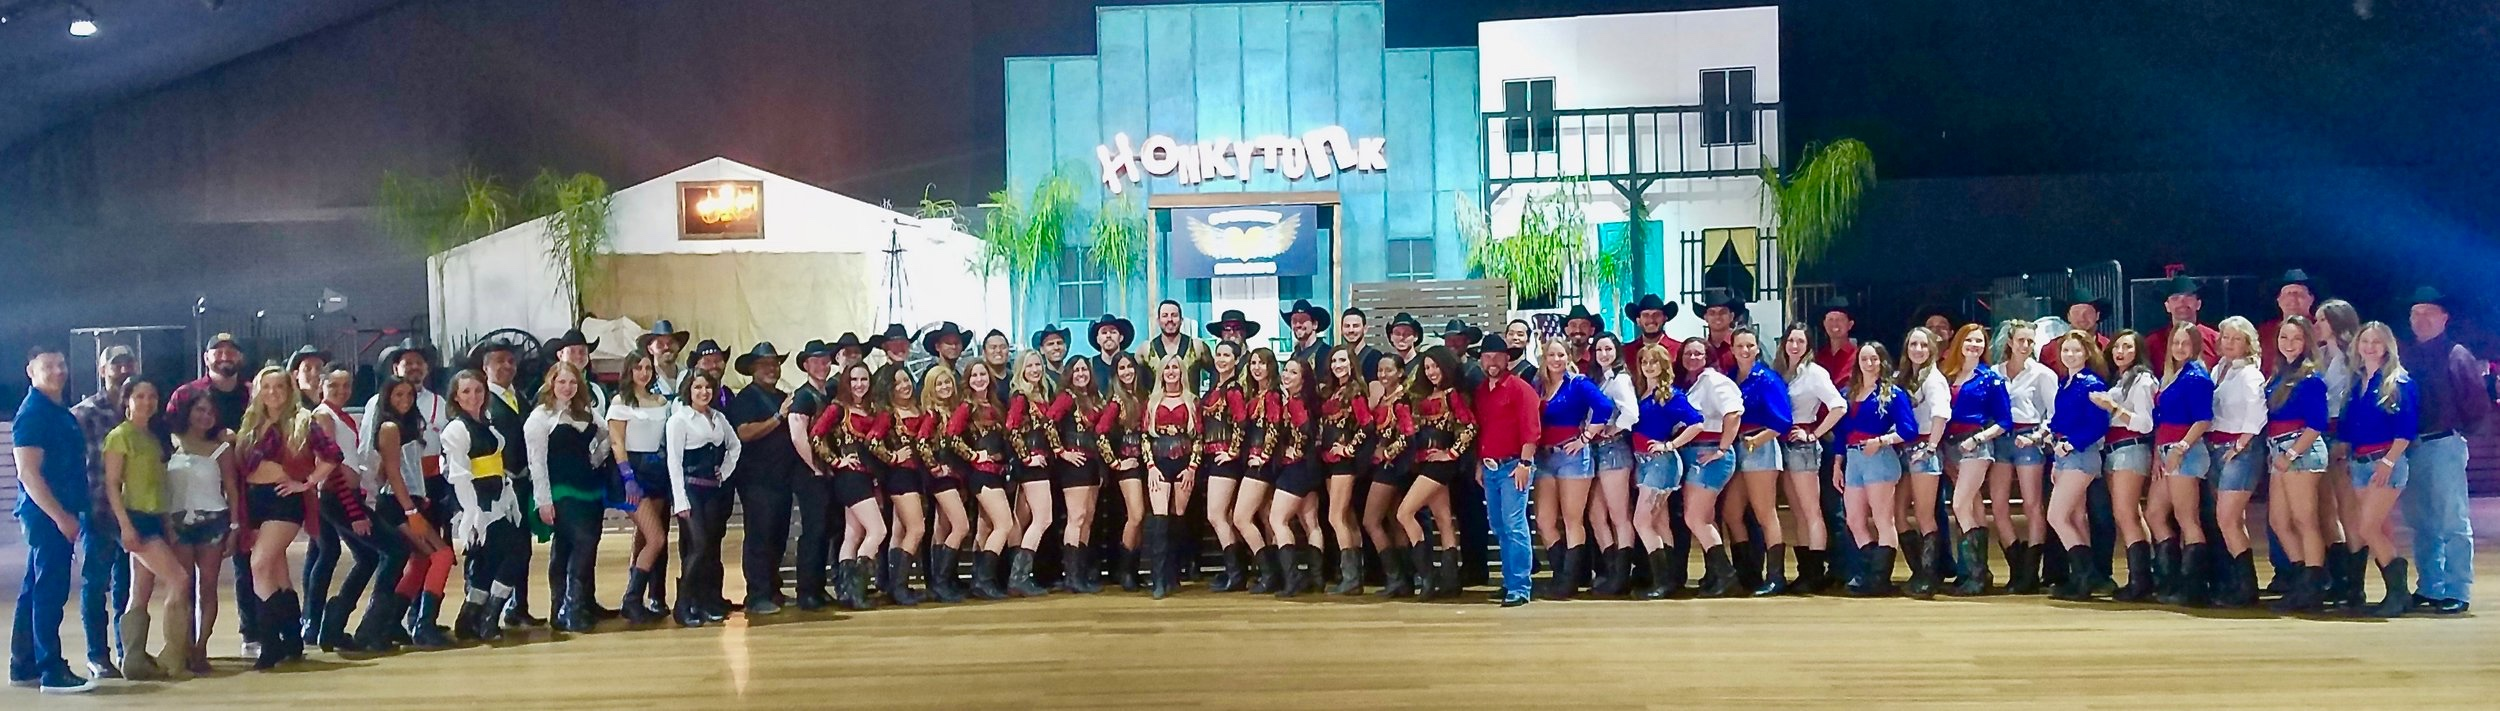 "ALL PERFORMANCE GROUPS FROM THE ""HONKEYTONK' DANCE TENT - STAGECOACH 2019  INCLUDING (FROM LEFT TO RIGHT) WEST COAST SWINGERS, YOUR BELOVED LA WRANGLERS, THE HONKEYTONK LINE DANCE CREW PICTURED IN RED AND BLACK AND ""SOCALI COMFORT"" IN RED, WHITE AND BLUE"